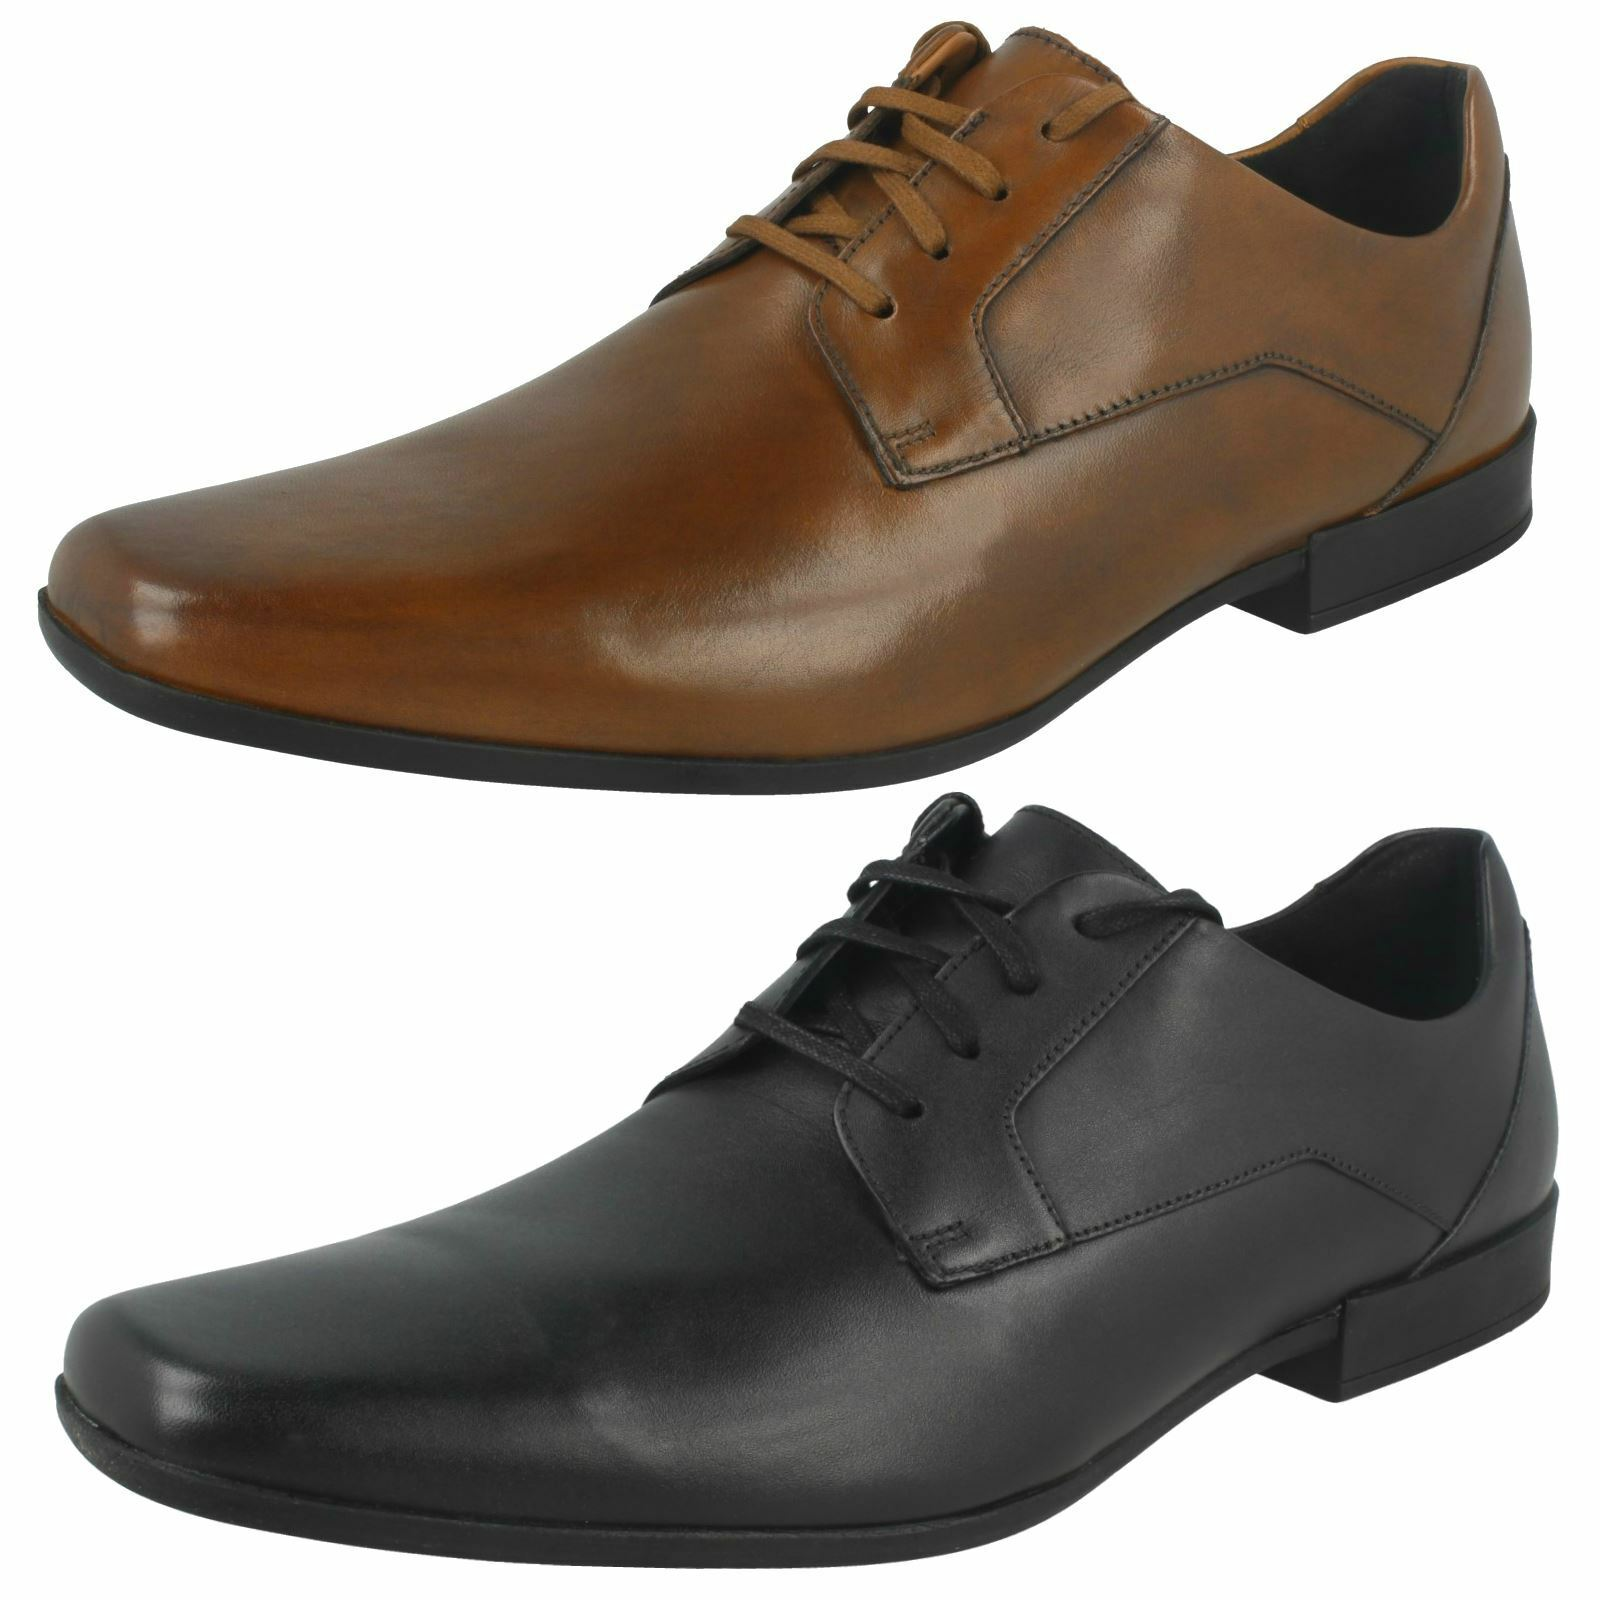 Uomo Clarks Formal Schuhes 'Glement Lace'